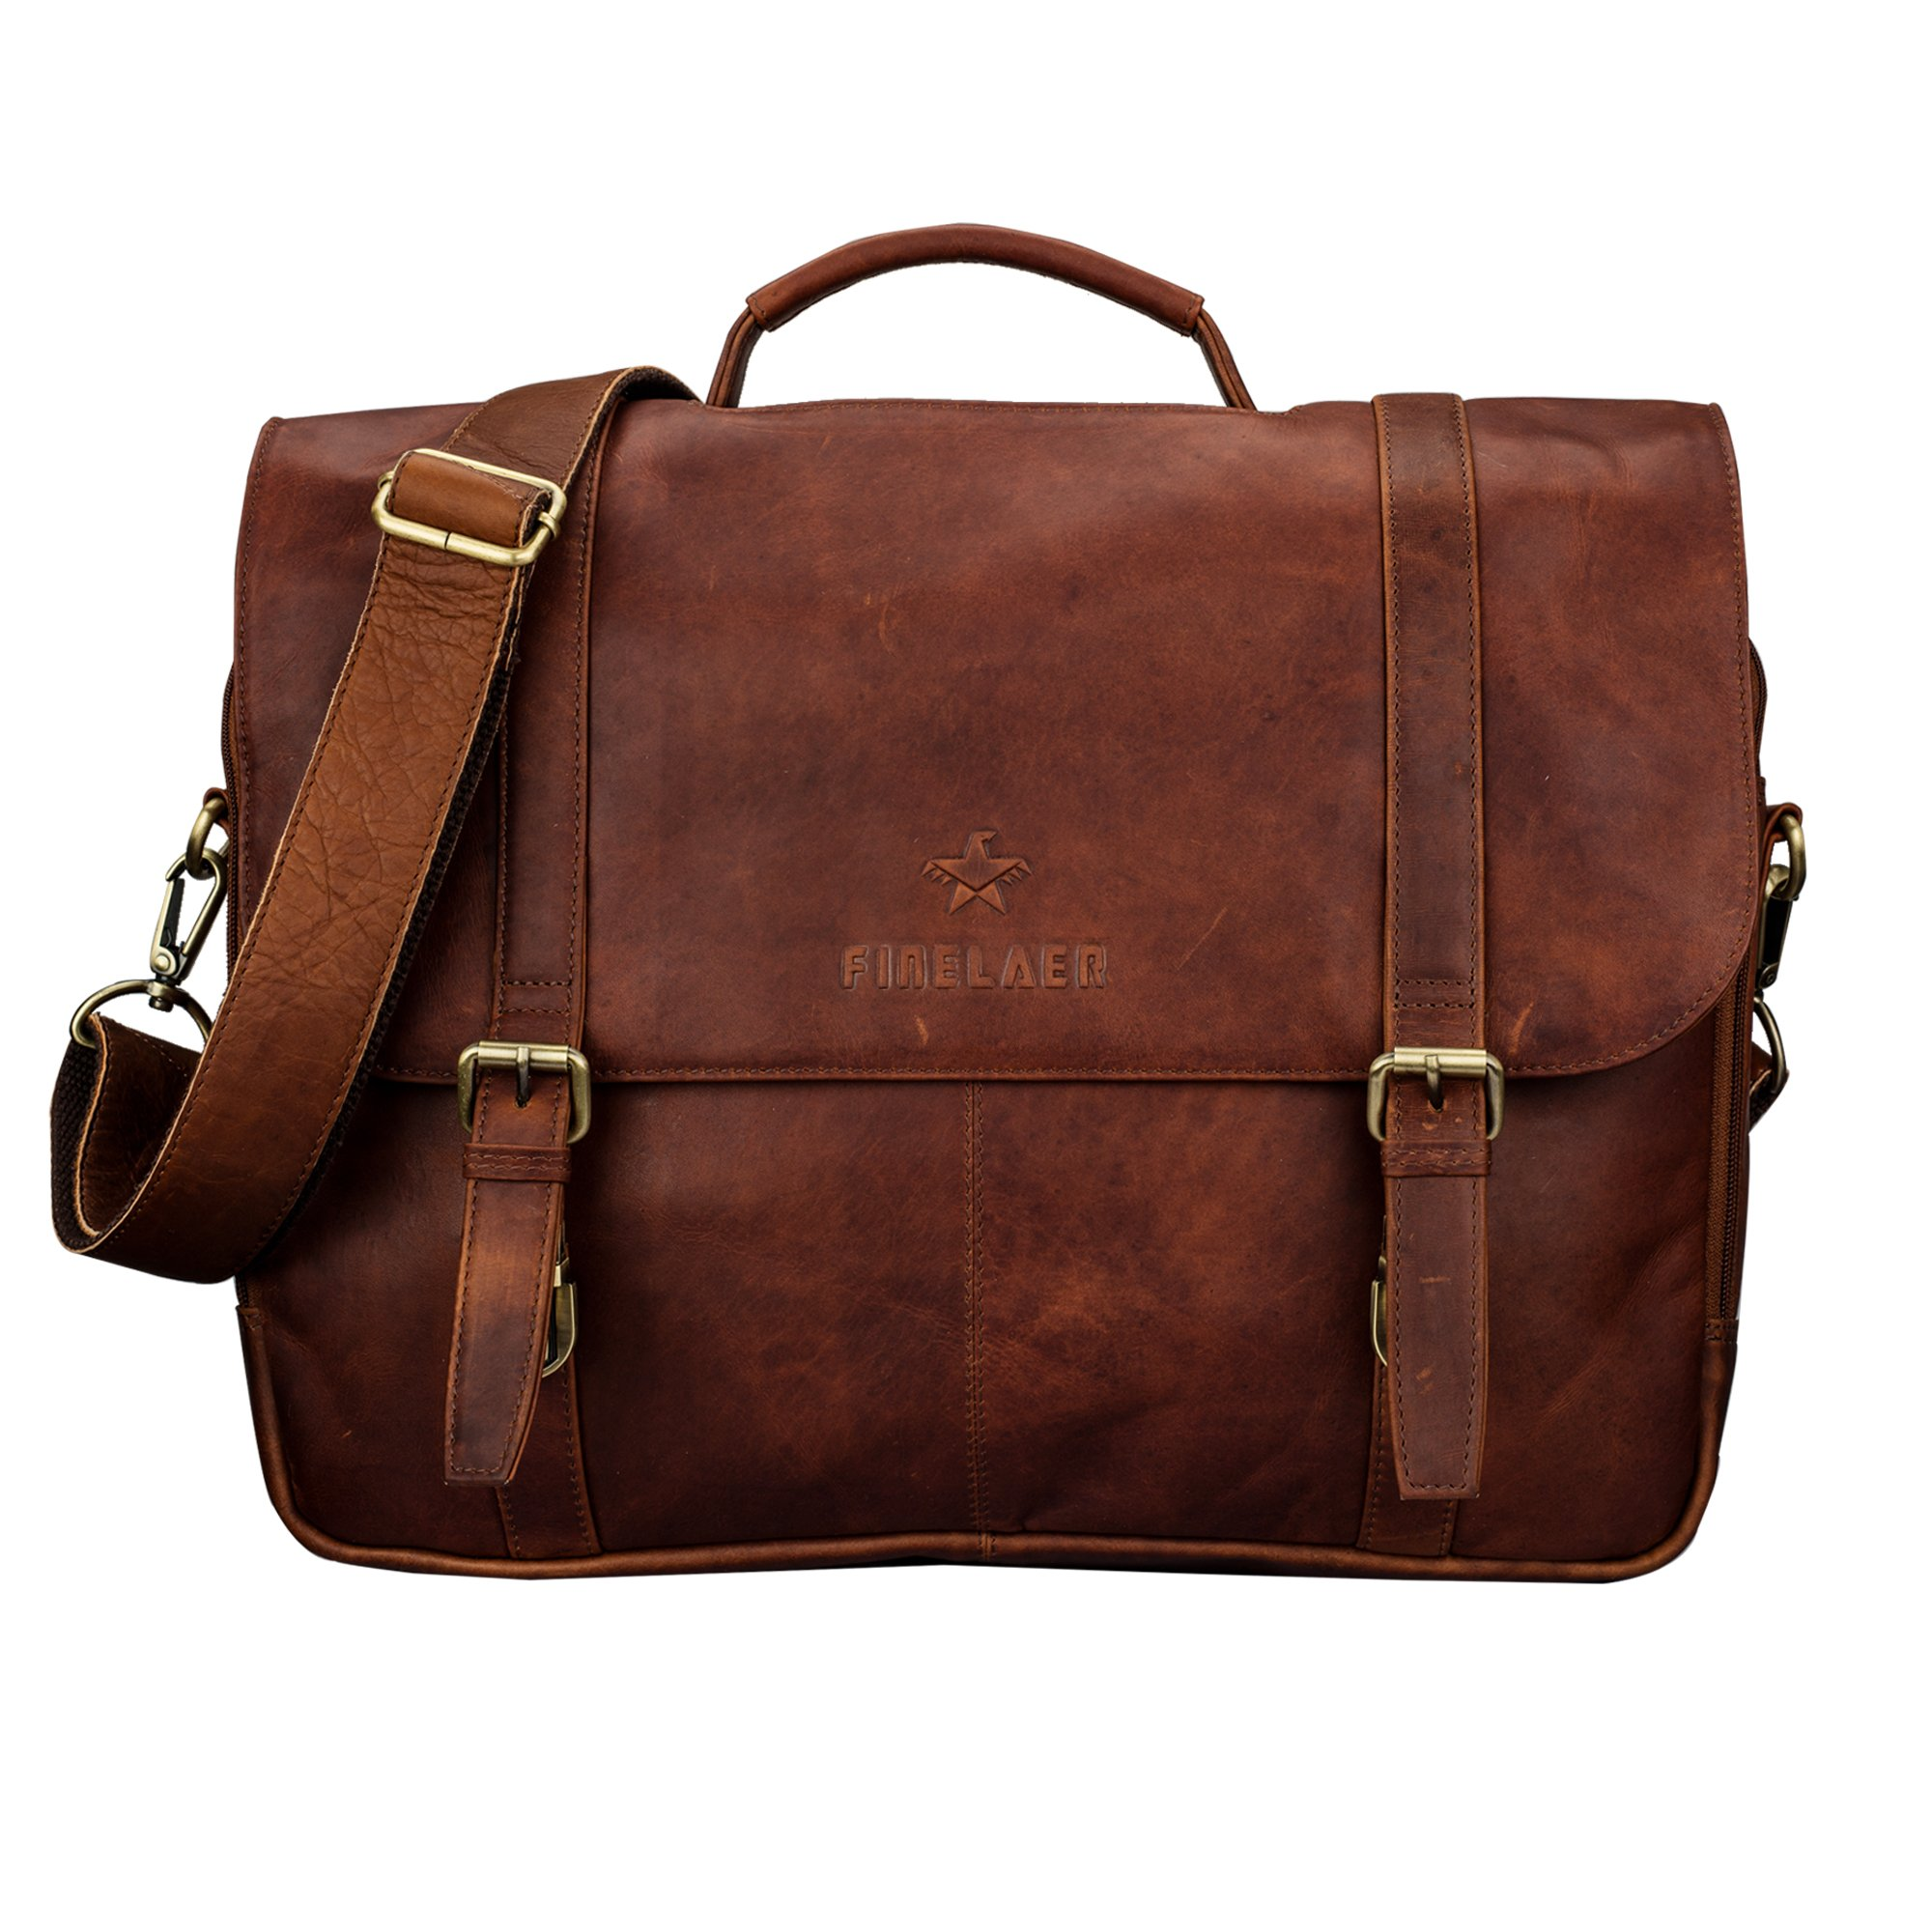 Genuine Leather Flap-Over Laptop / Computer Shoulder Strap Briefcase Messenger Bag Brown | Finelaer